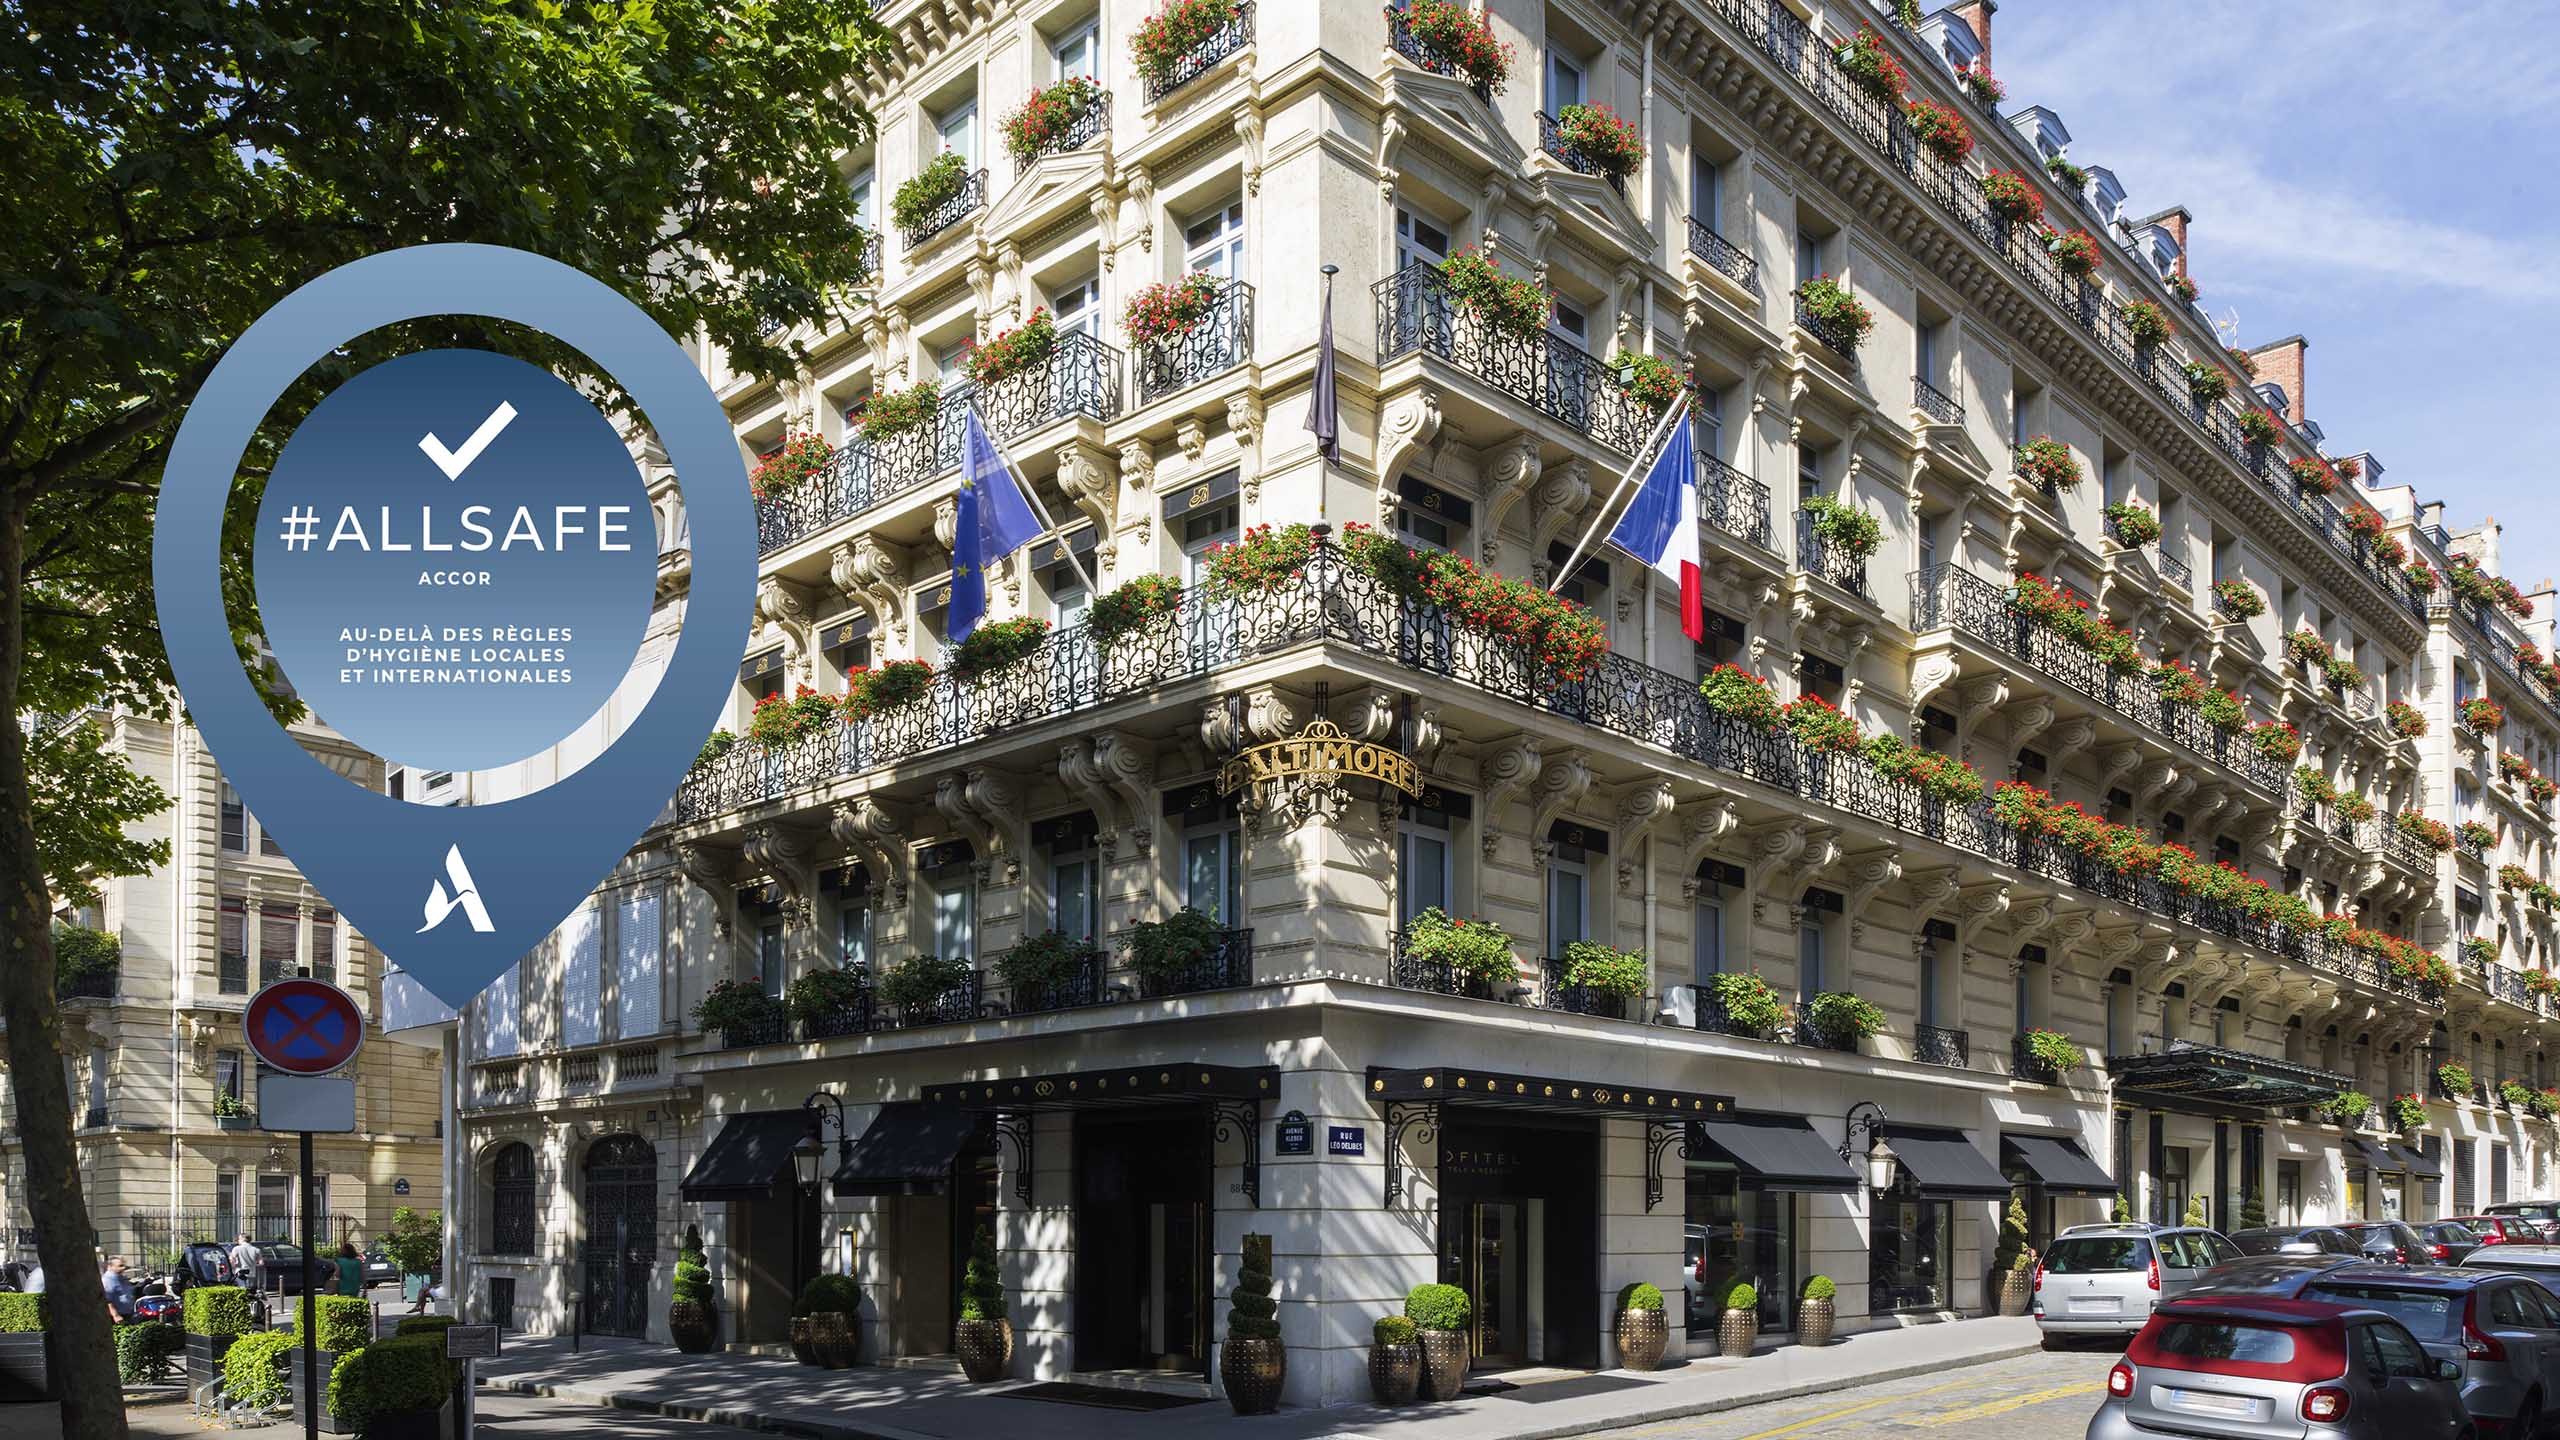 Incroyable Hotel De Luxe PARIS U2013 Sofitel Paris Baltimore Tour Eiffel